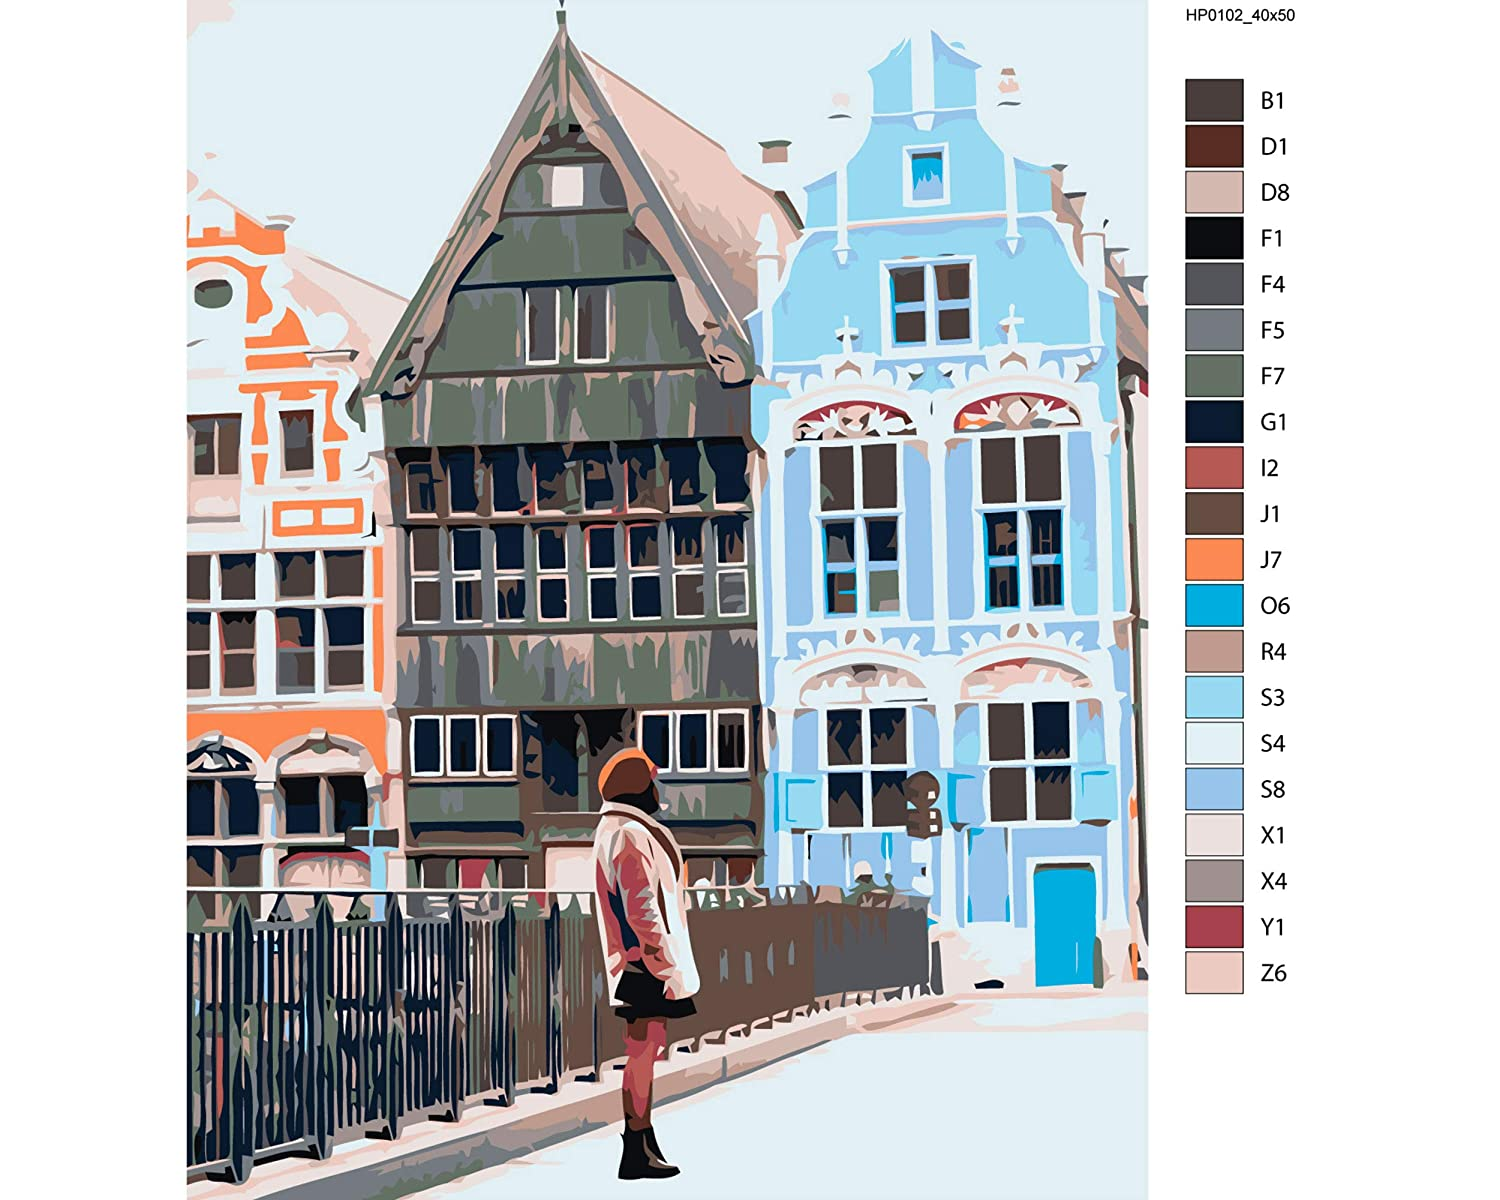 Old City Canvas Painting Art Design Picture DIY Canvas Cute Girl Painting Number Kit Acrylic Painting Architecture Home Decor High-Quality Picture